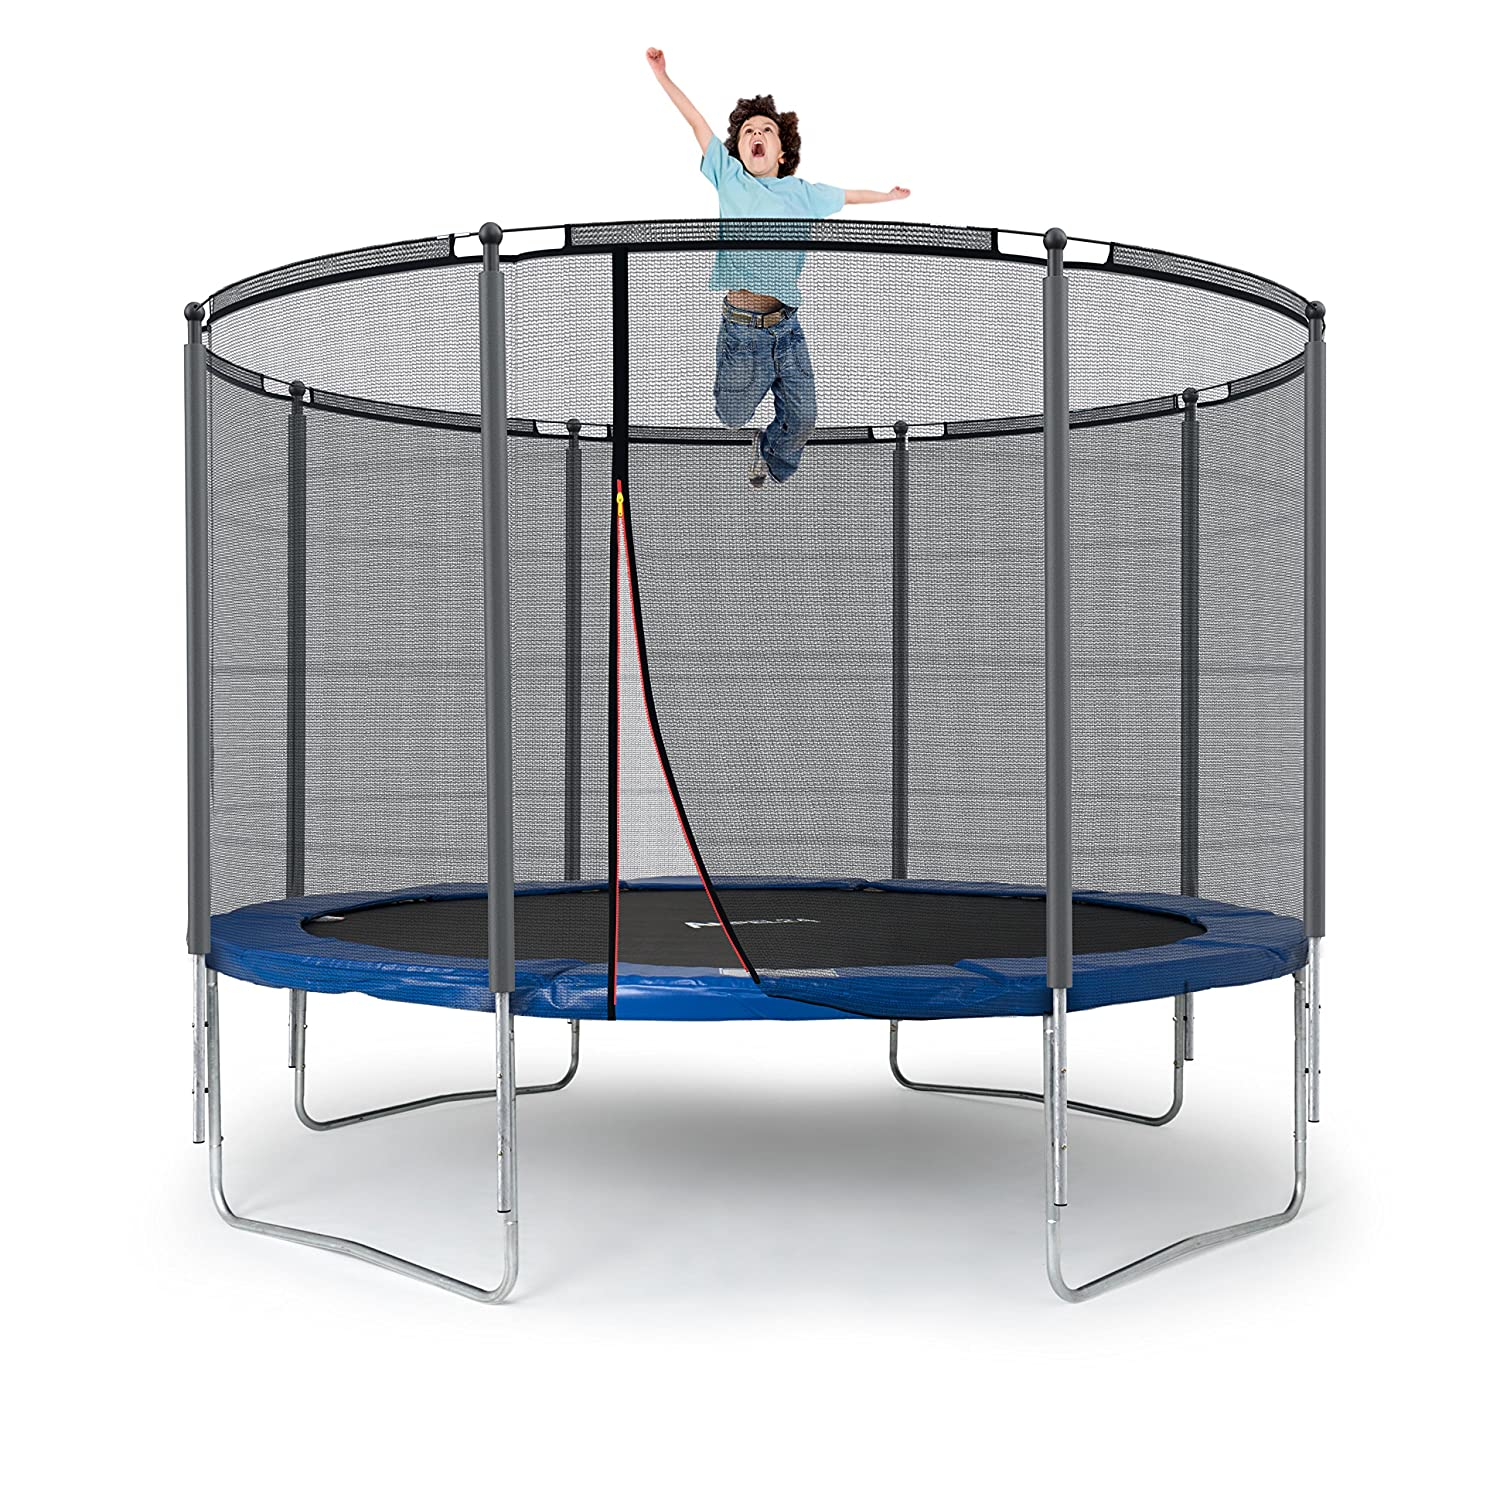 Ampel 24 Outdoor Trampolin 305 cm blau Bild